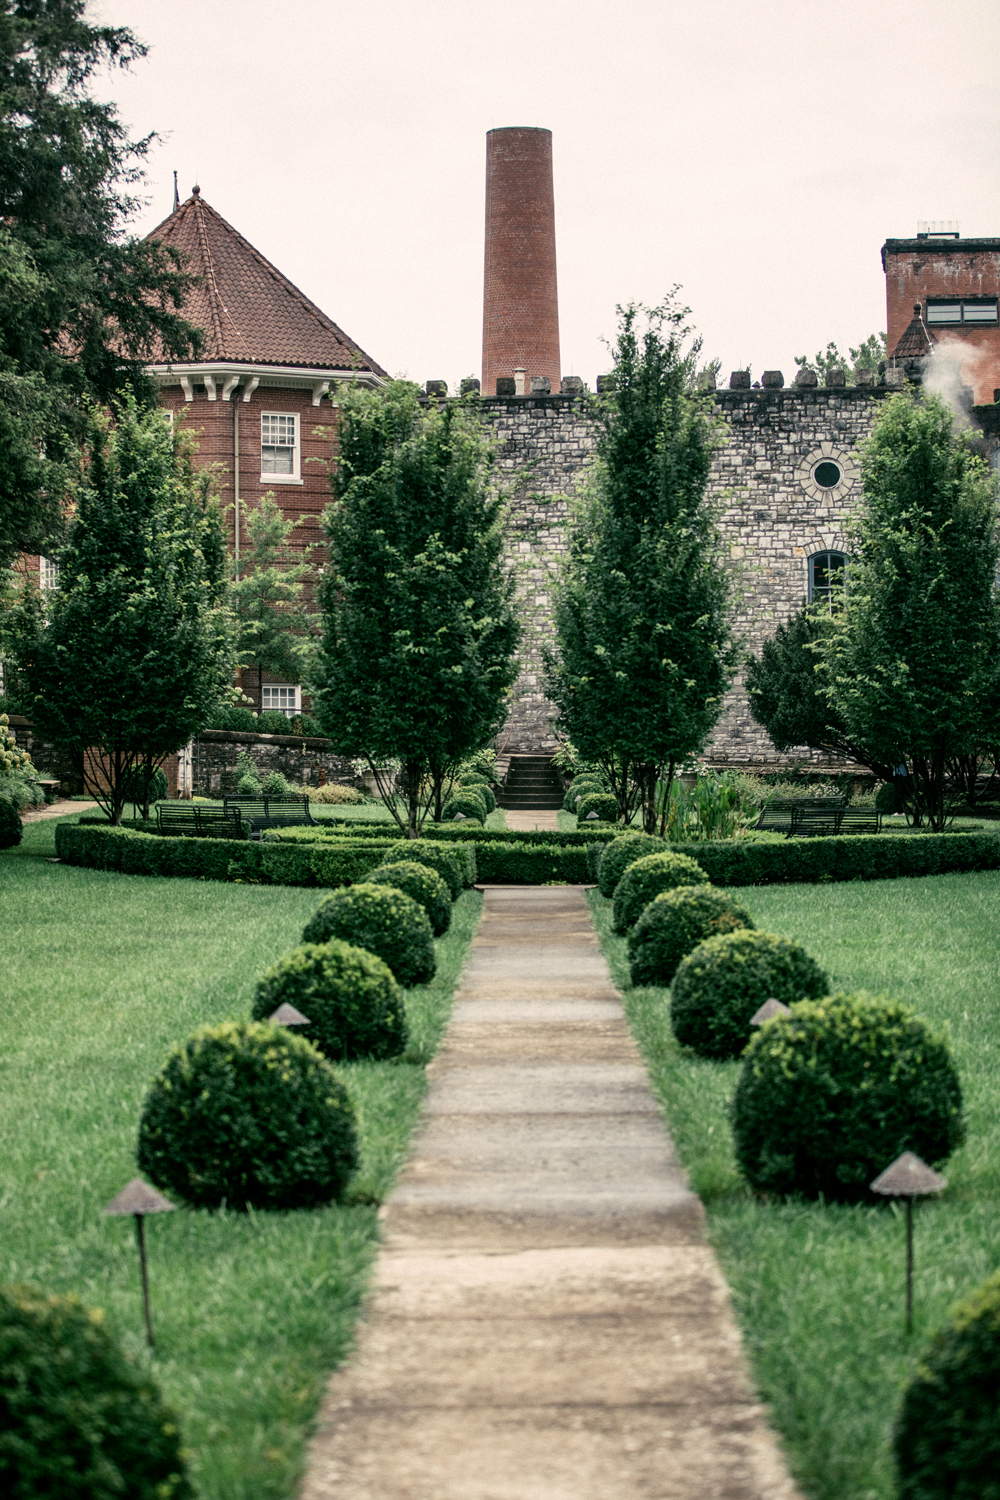 entrance to castle and key distillery with greenery path